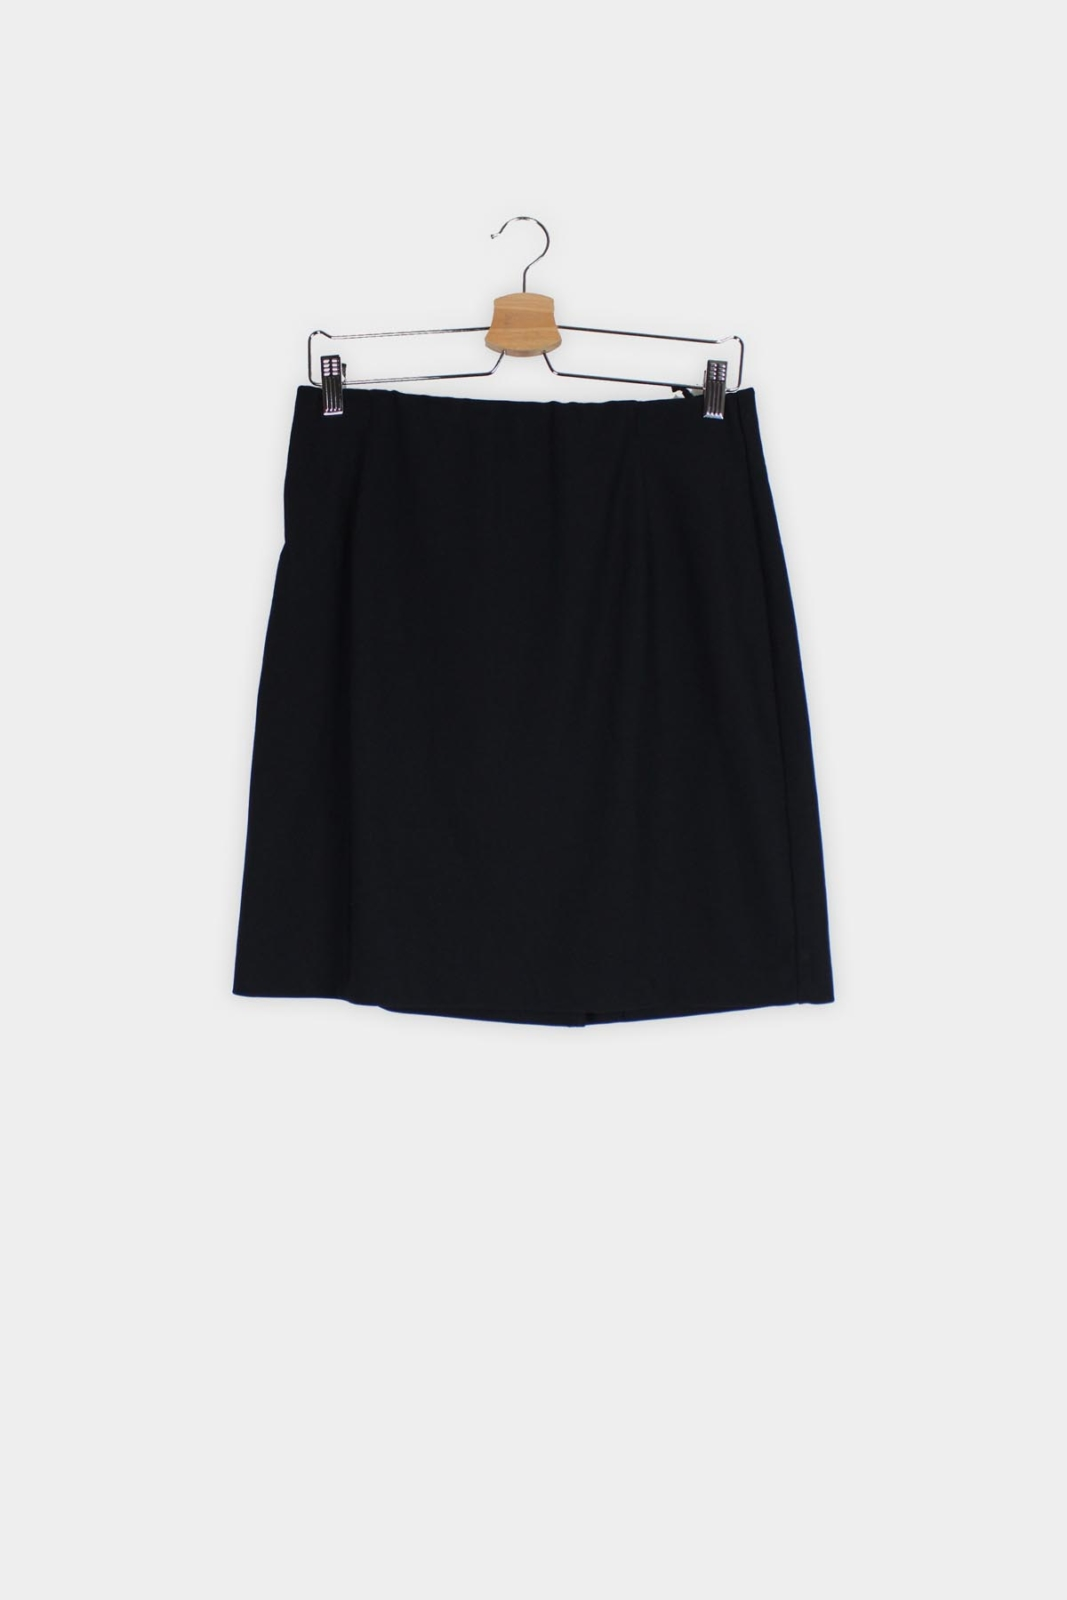 Second-hand Clothing - Sale, Women, Skirts, Second-Hand Clothing